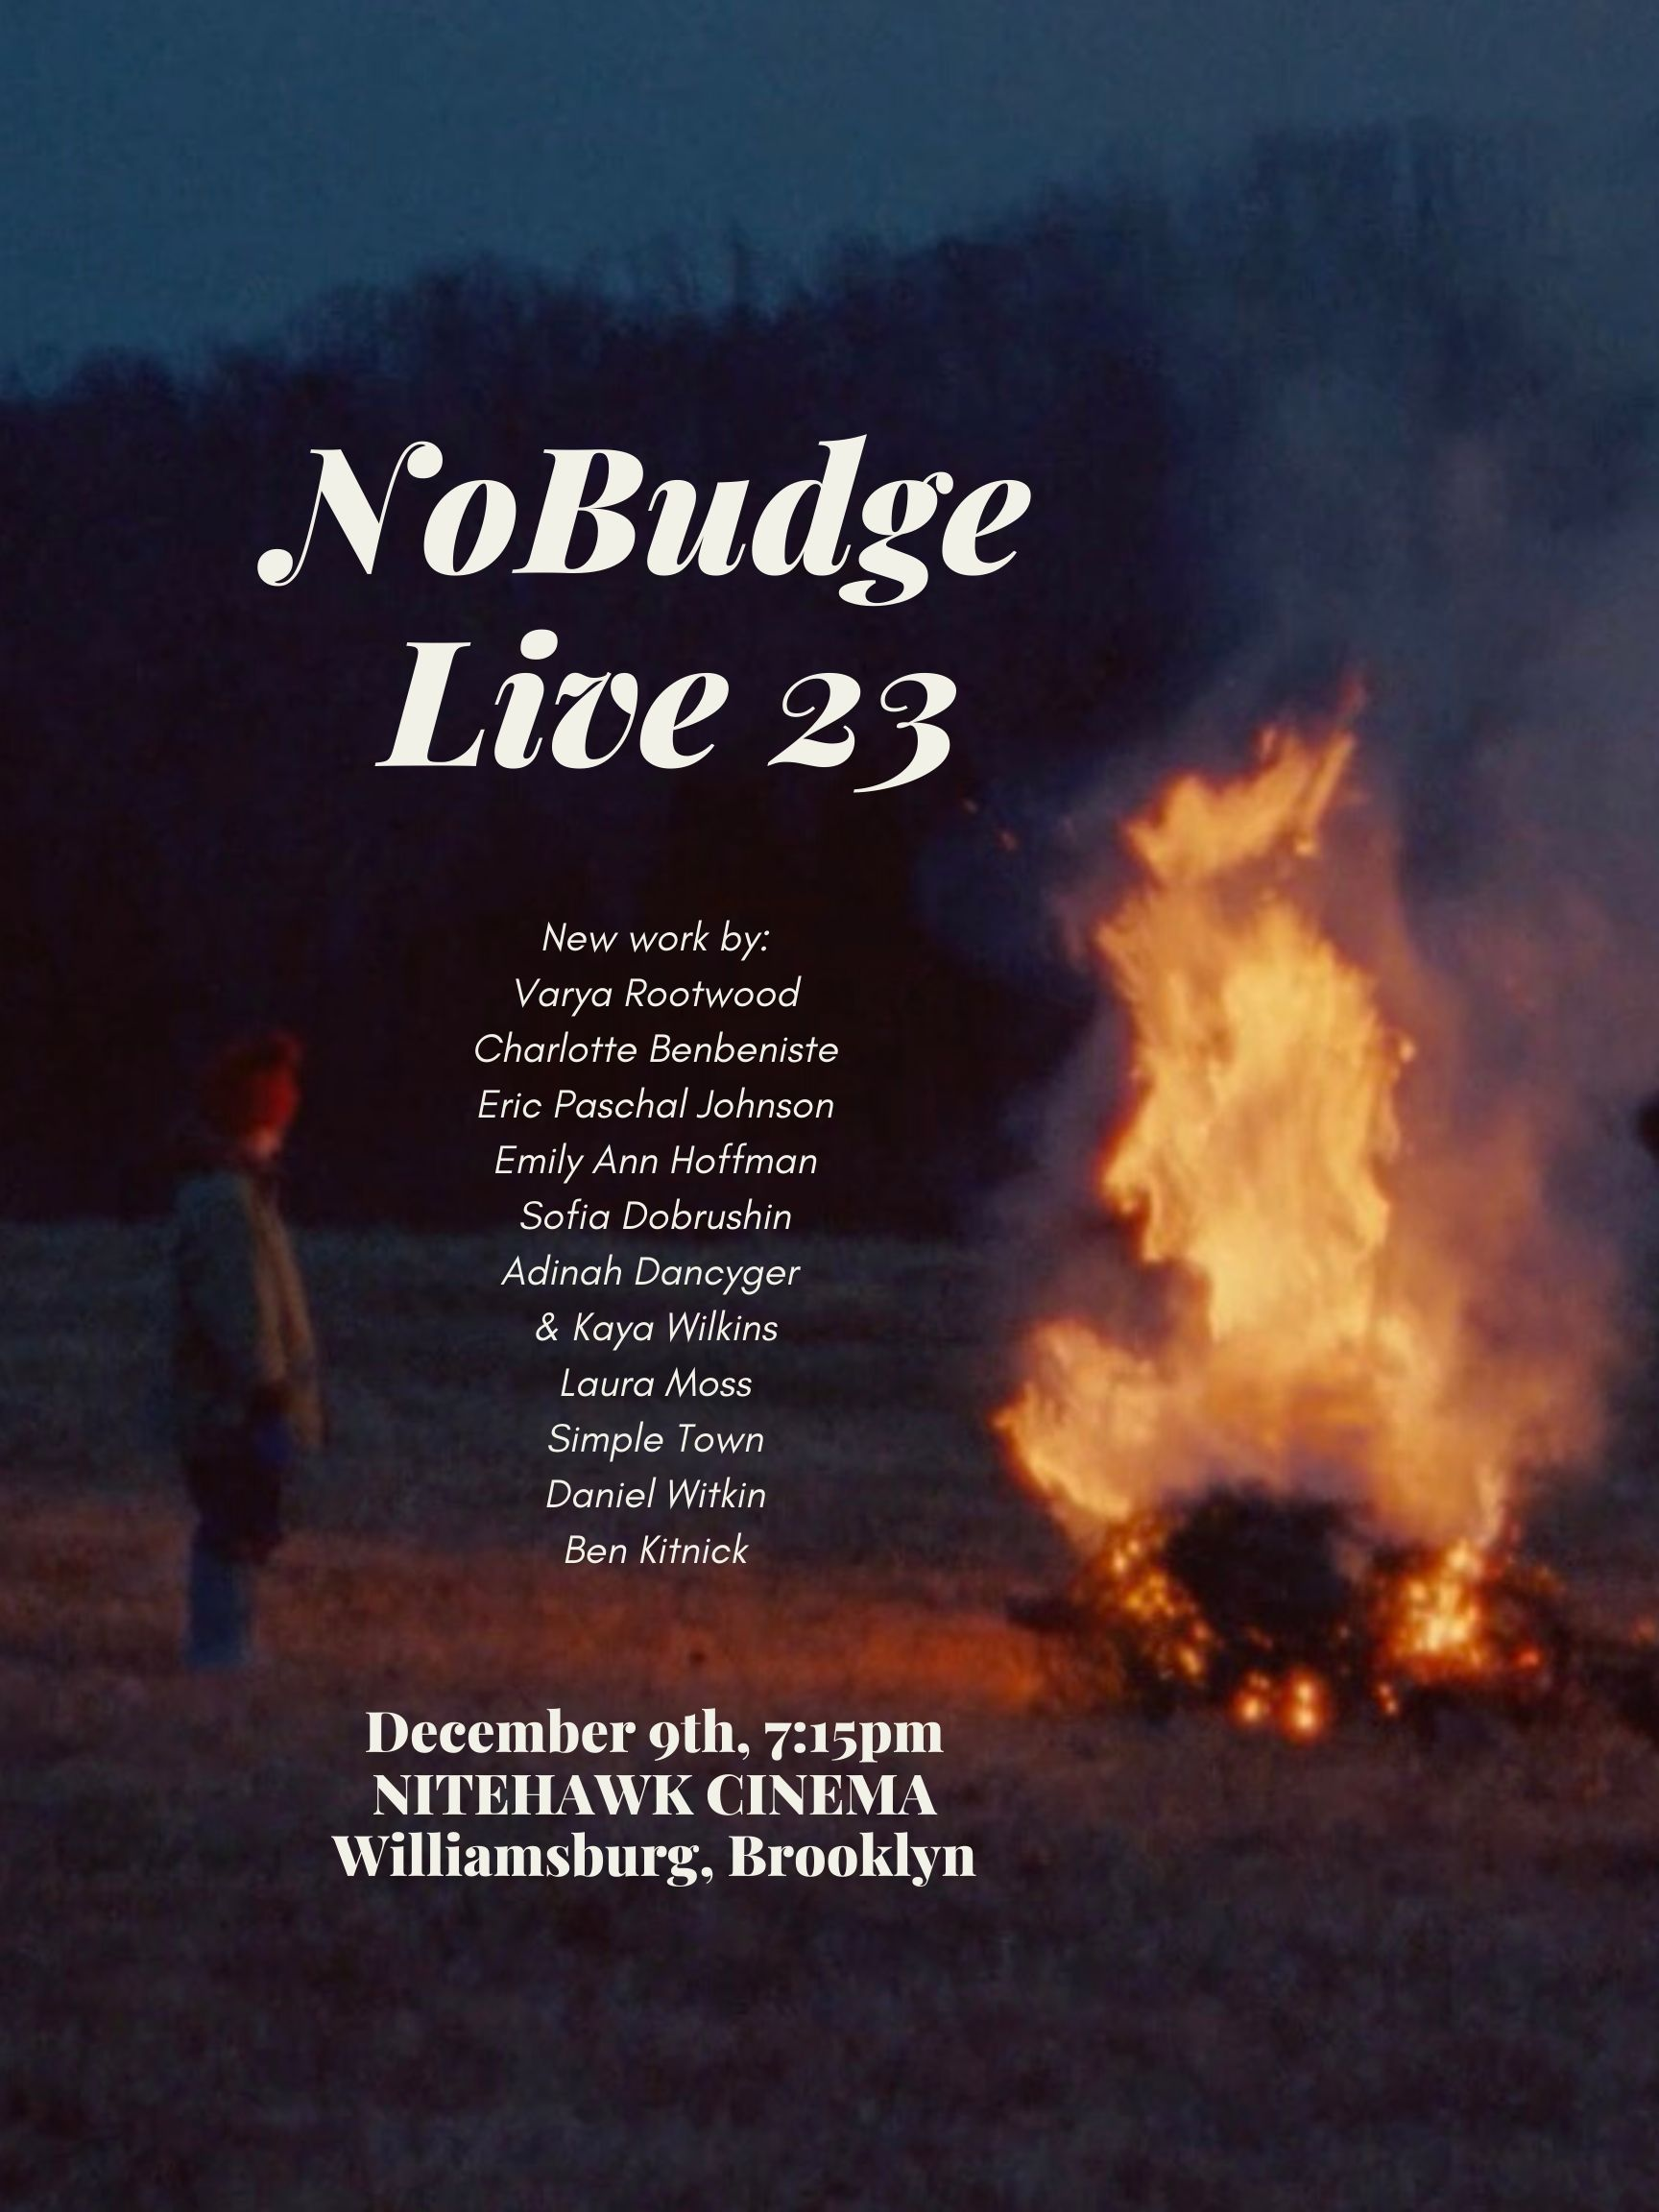 Poster for NoBudge Live #23